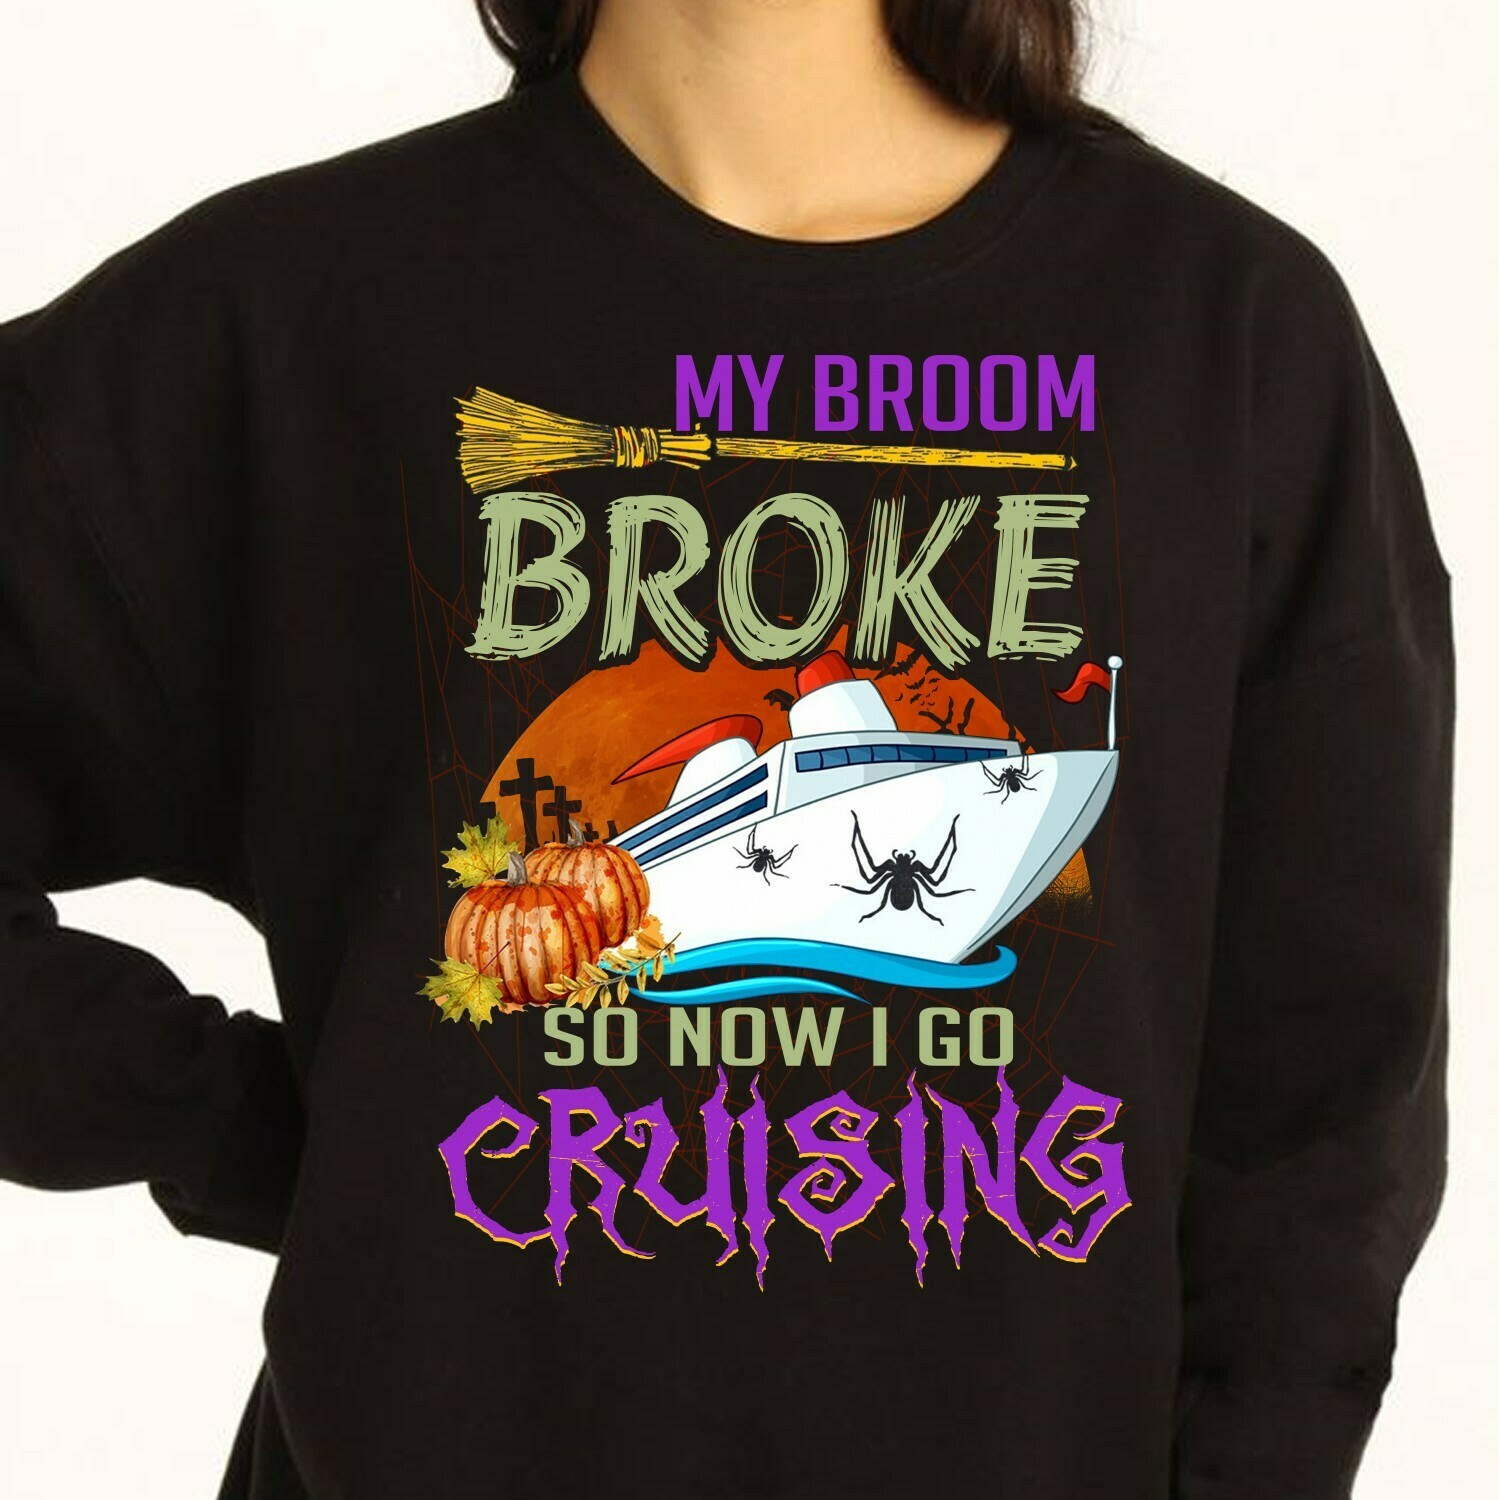 My Broom Broke So Now I Go Cruising, Halloween Cruise Broom Pumpkin Spider Not So Scary Gifts For Best Friend Family Party Vacation T-shirt Long Sleeve Sweatshirt Hoodie Jolly Family Gifts